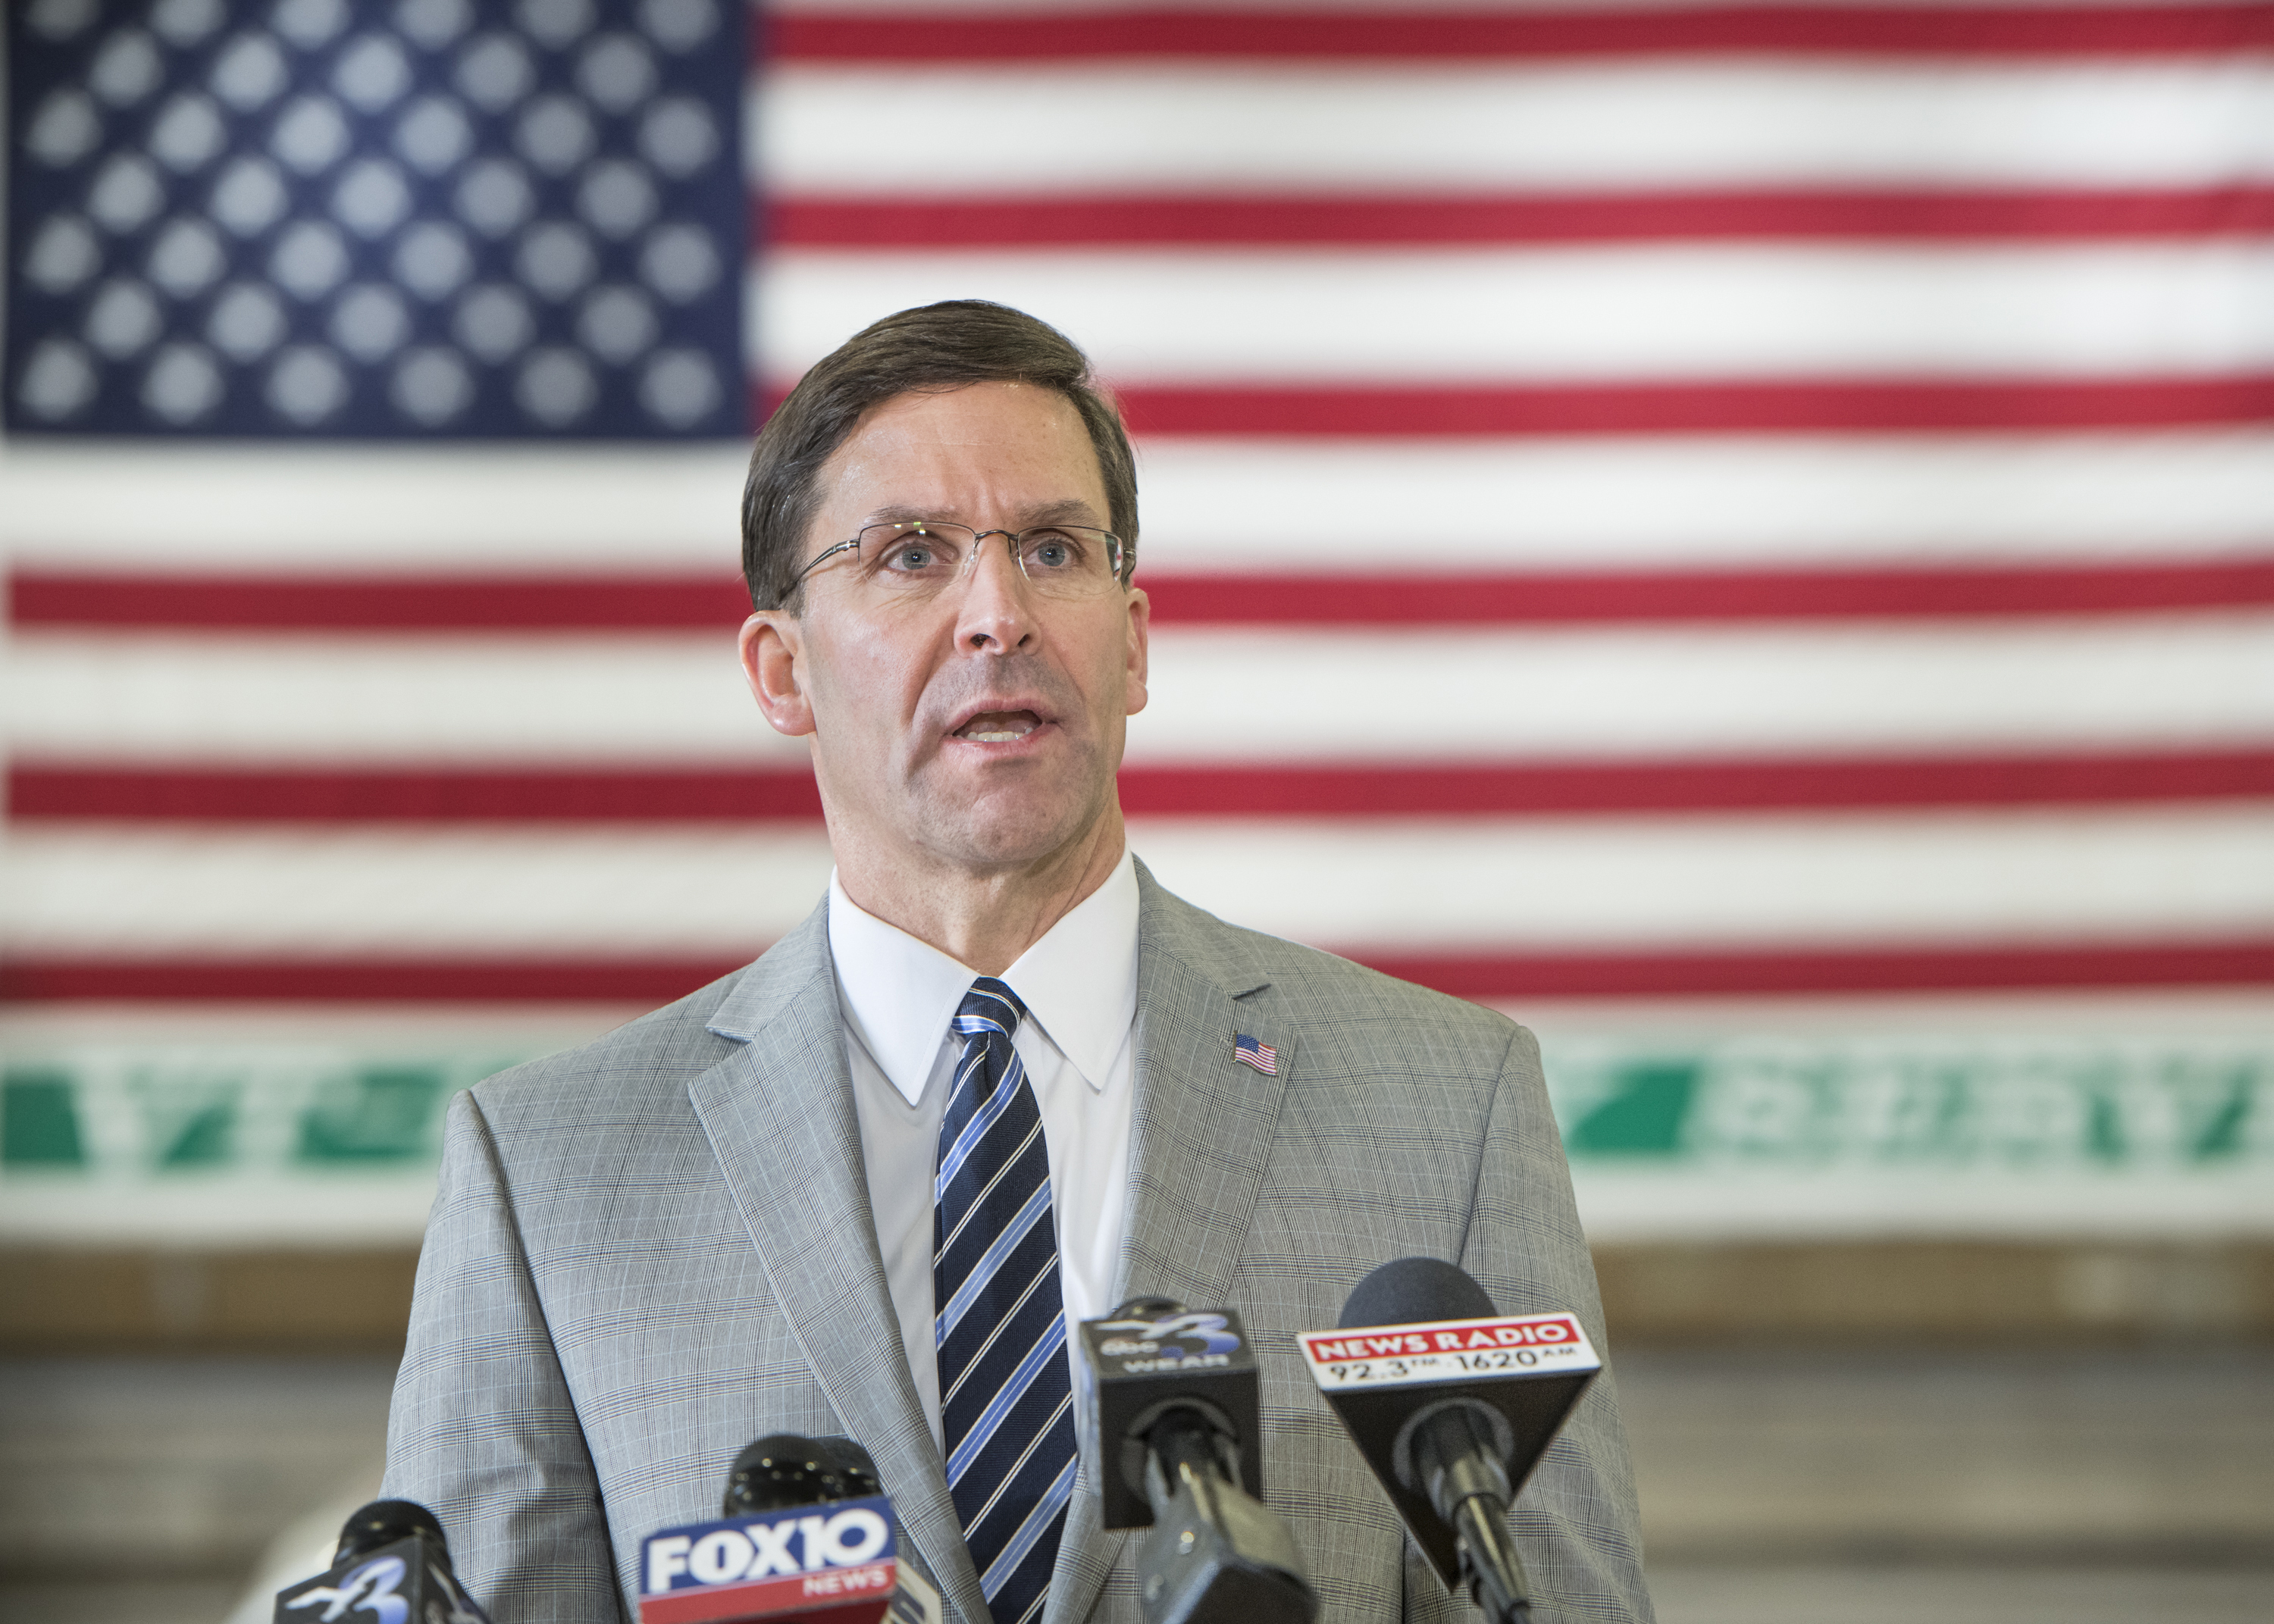 Pentagon chief Esper concerned about Chinese hacking, espionage